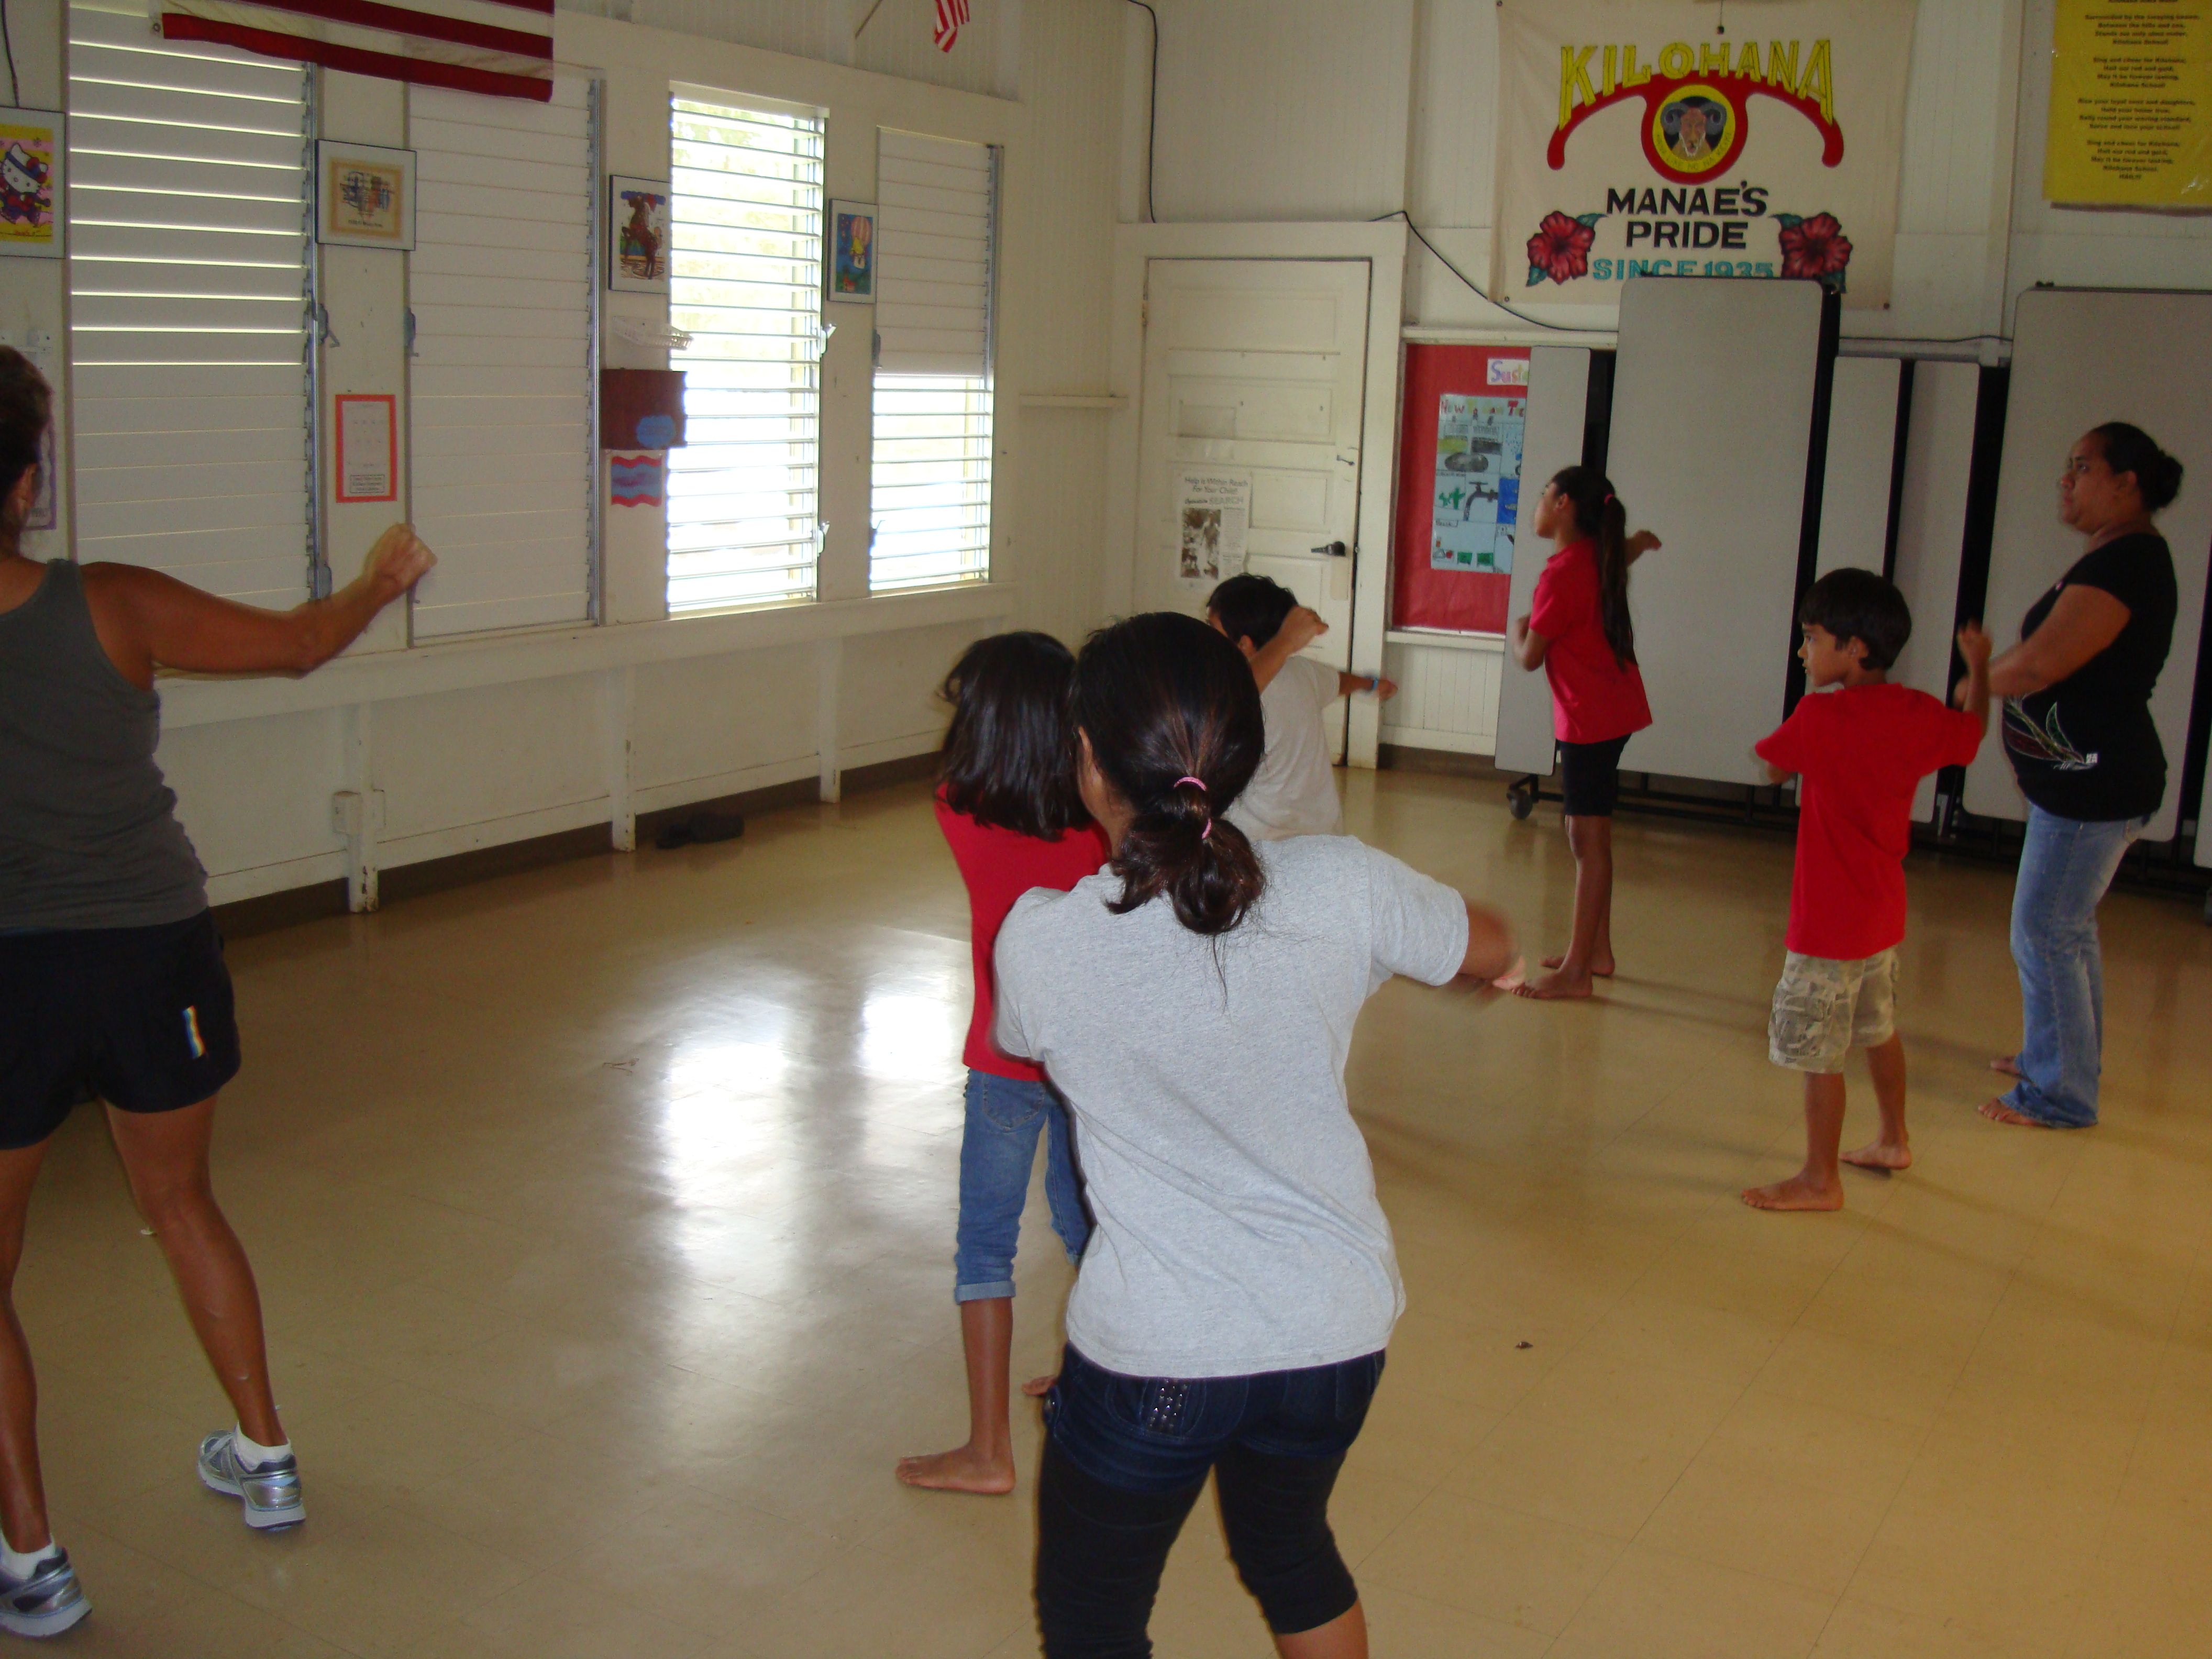 The Kilohana Dancercise class follows along as their instructor Lani Sawyer (on left) gets them moving to the beat.